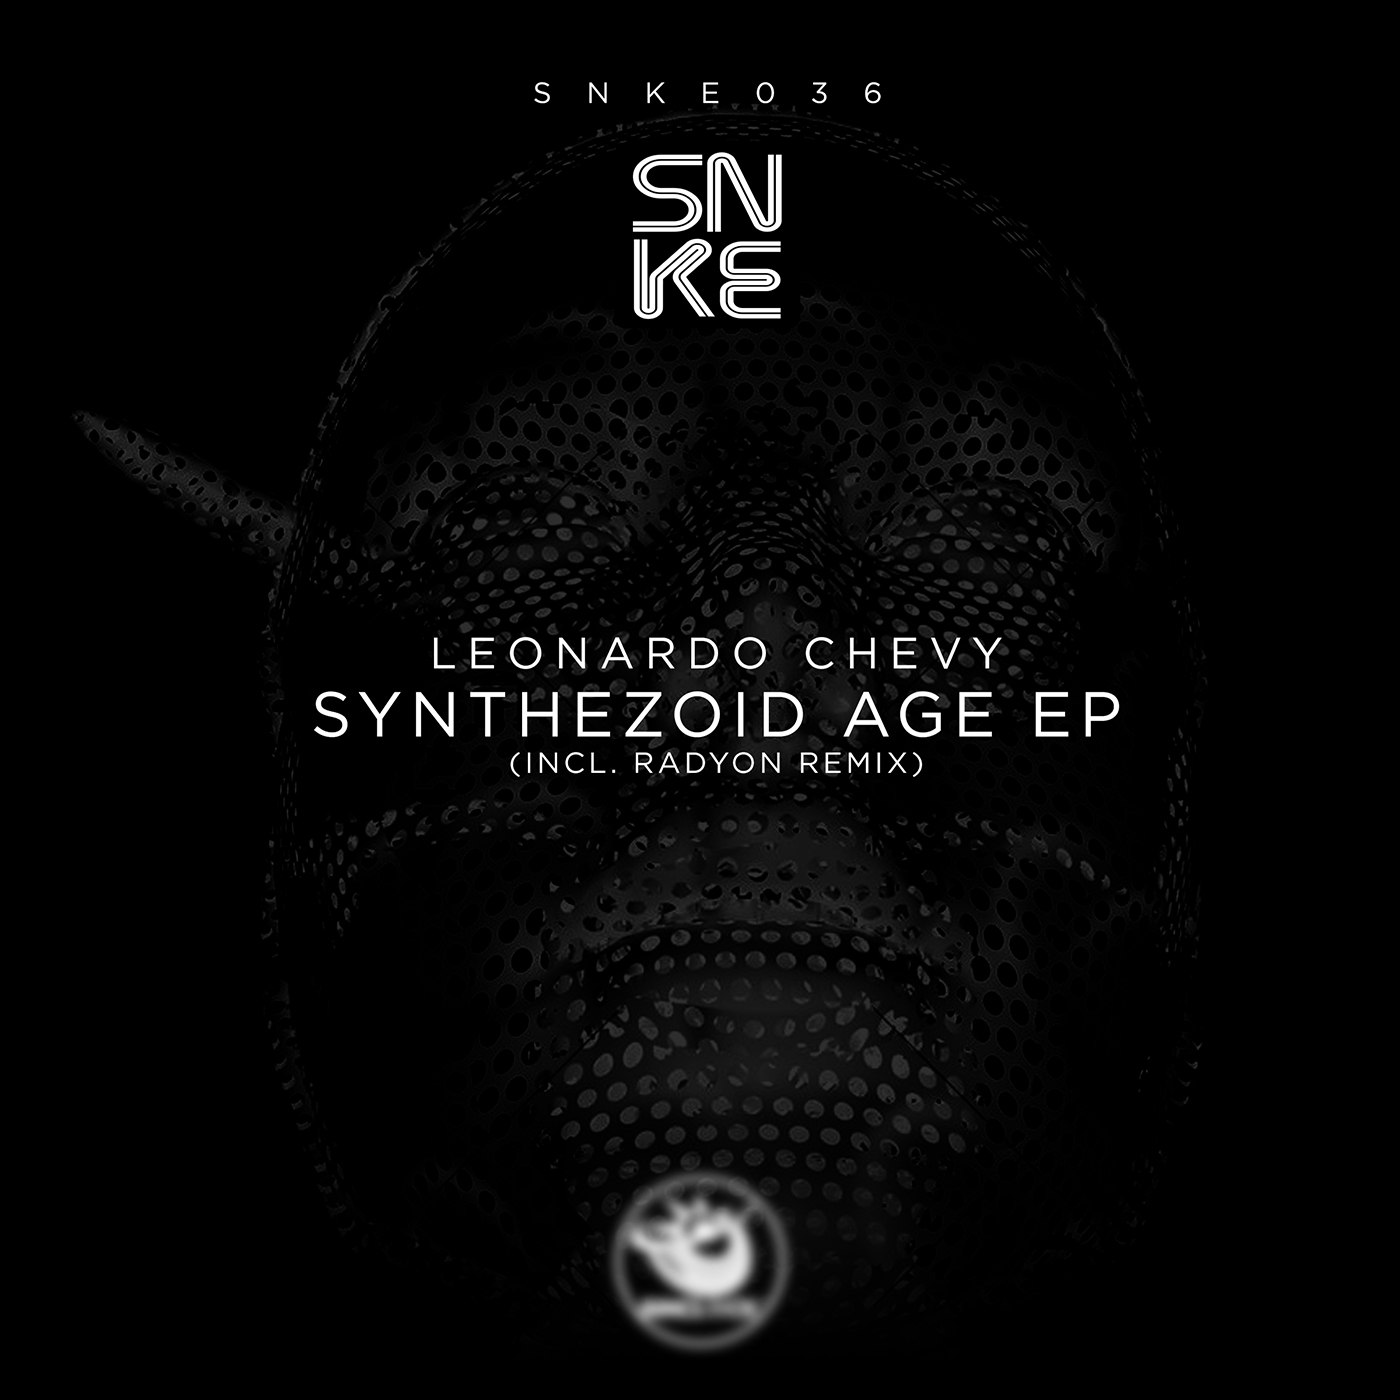 Leonardo Chevy - Synthezoid Age Ep - SNKE036 Cover